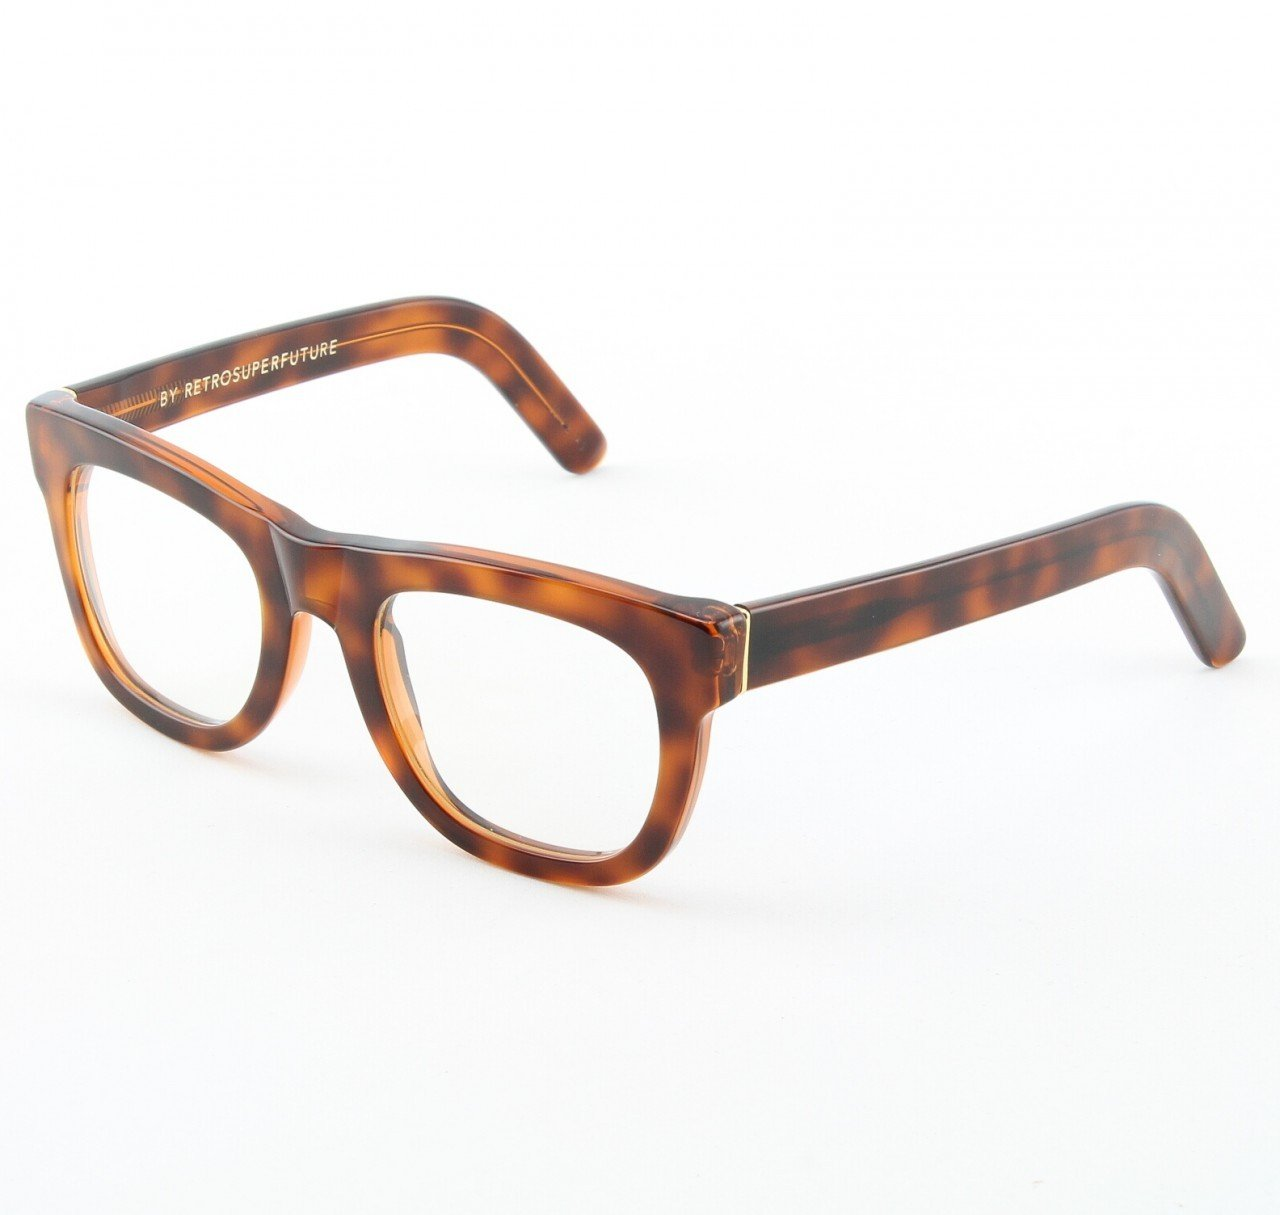 Super Ciccio 105/0A Eyeglasses Classic Havana with Clear Zeiss Lenses by RETROSUPERFUTURE